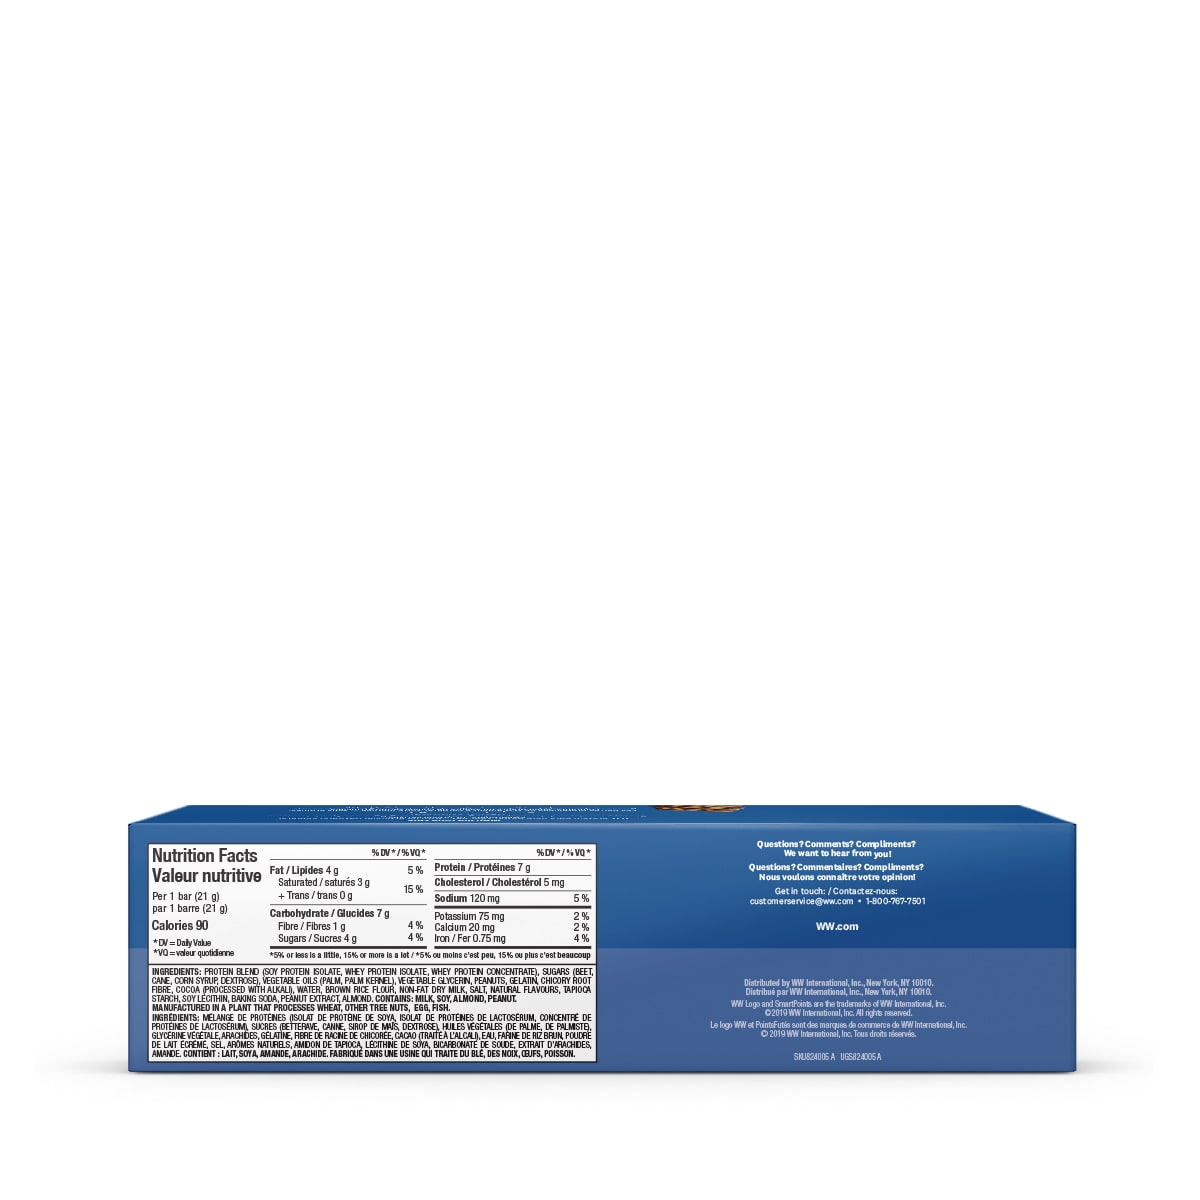 Chocolate Peanut Butter Baked Protein Bar (3 Pack) - back of box